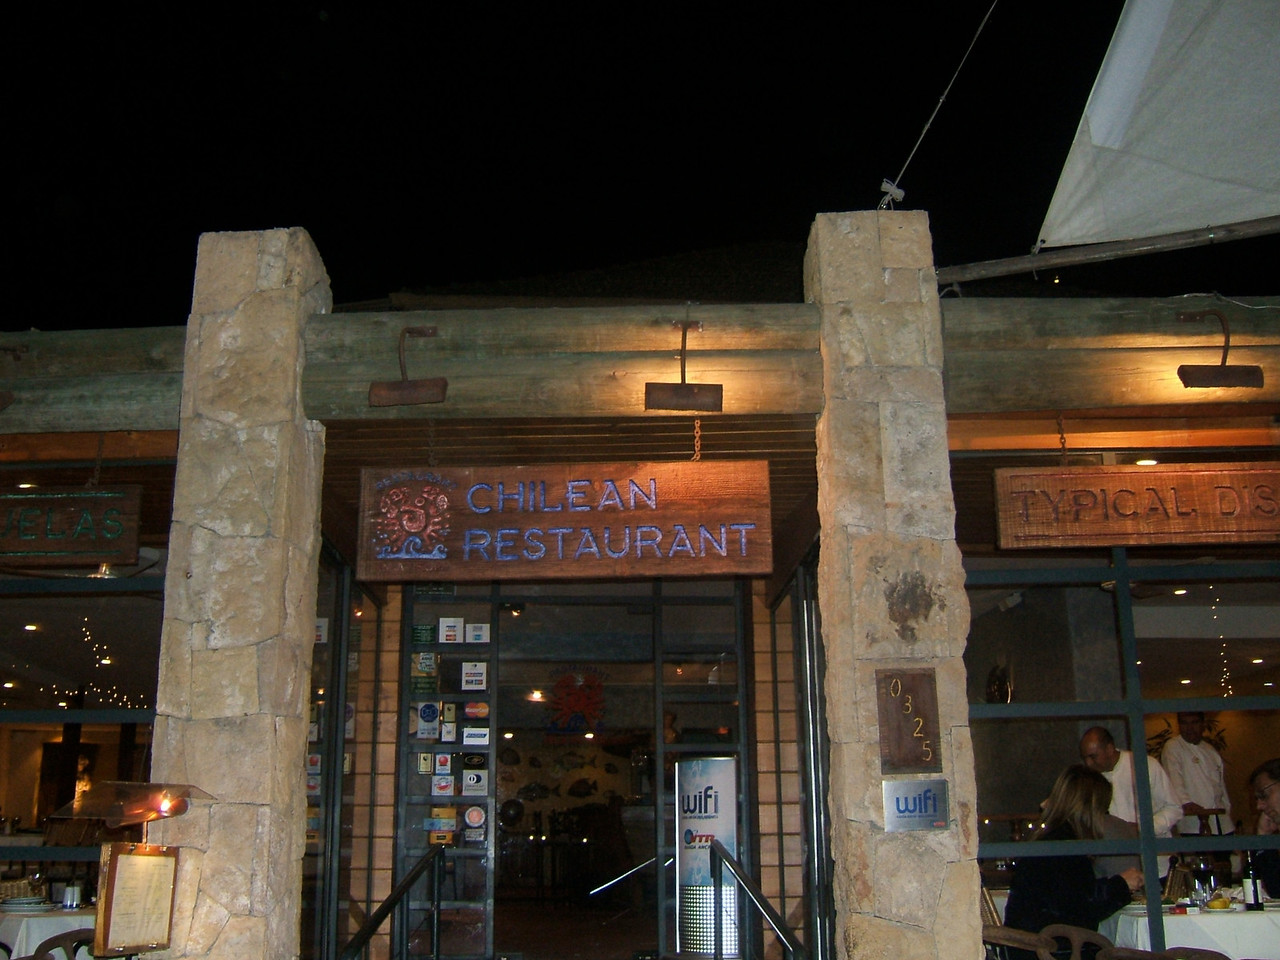 Restaurante Isla Negra at 325 El Bosque Norte in central Santiago is a great place for typical Chilean food.